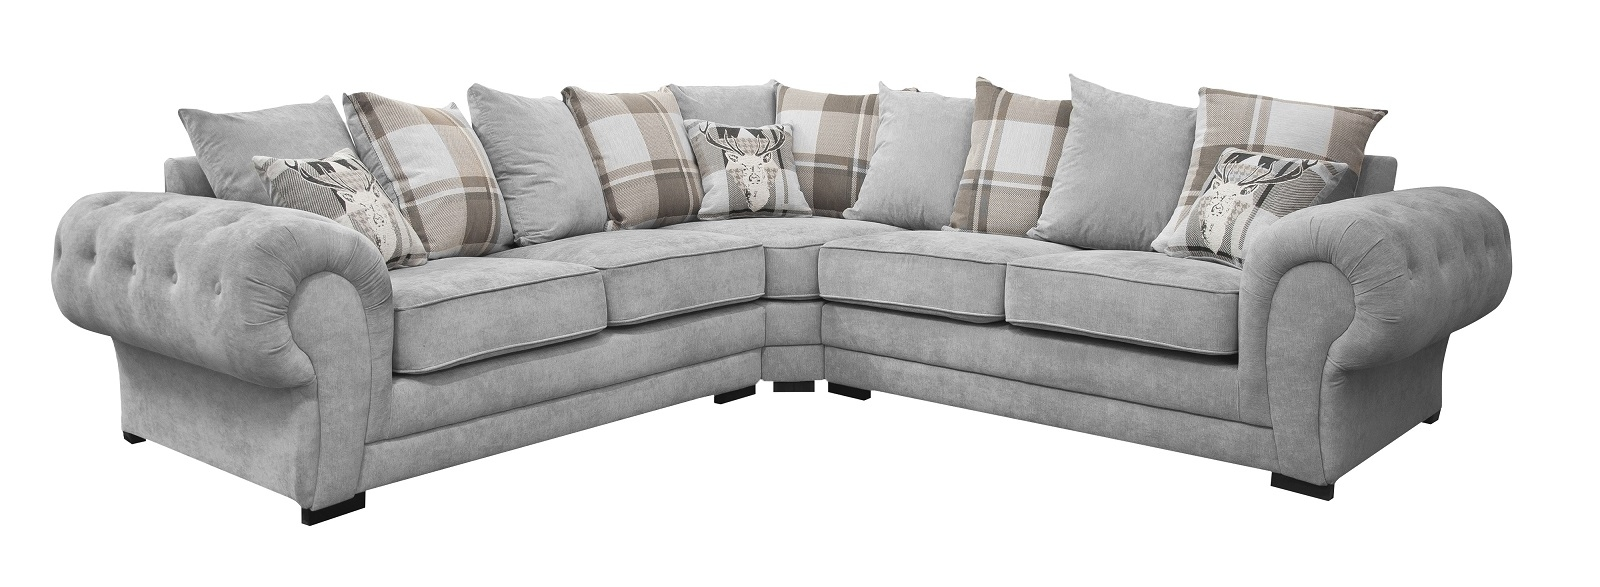 Details about BIG VERONA FABRIC CORNER SOFA LIGHT GREY (SILVER) - FABRIC  278 cm x 278 cm